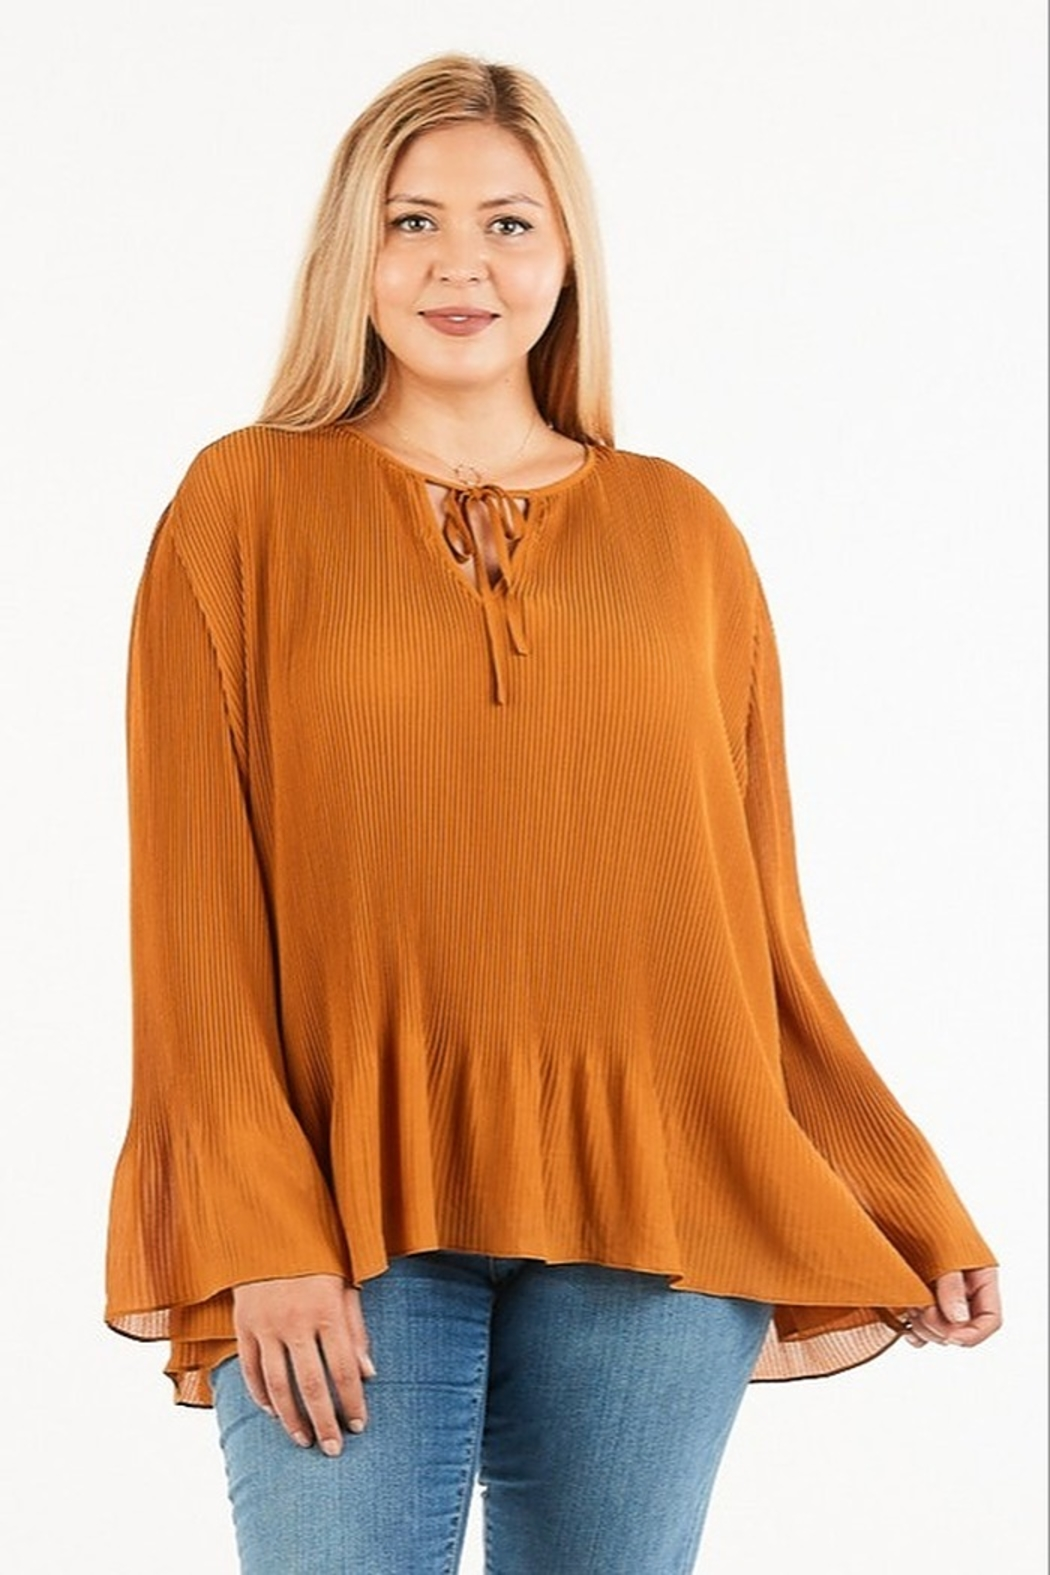 Very J Pleated Flare Blouse - Main Image